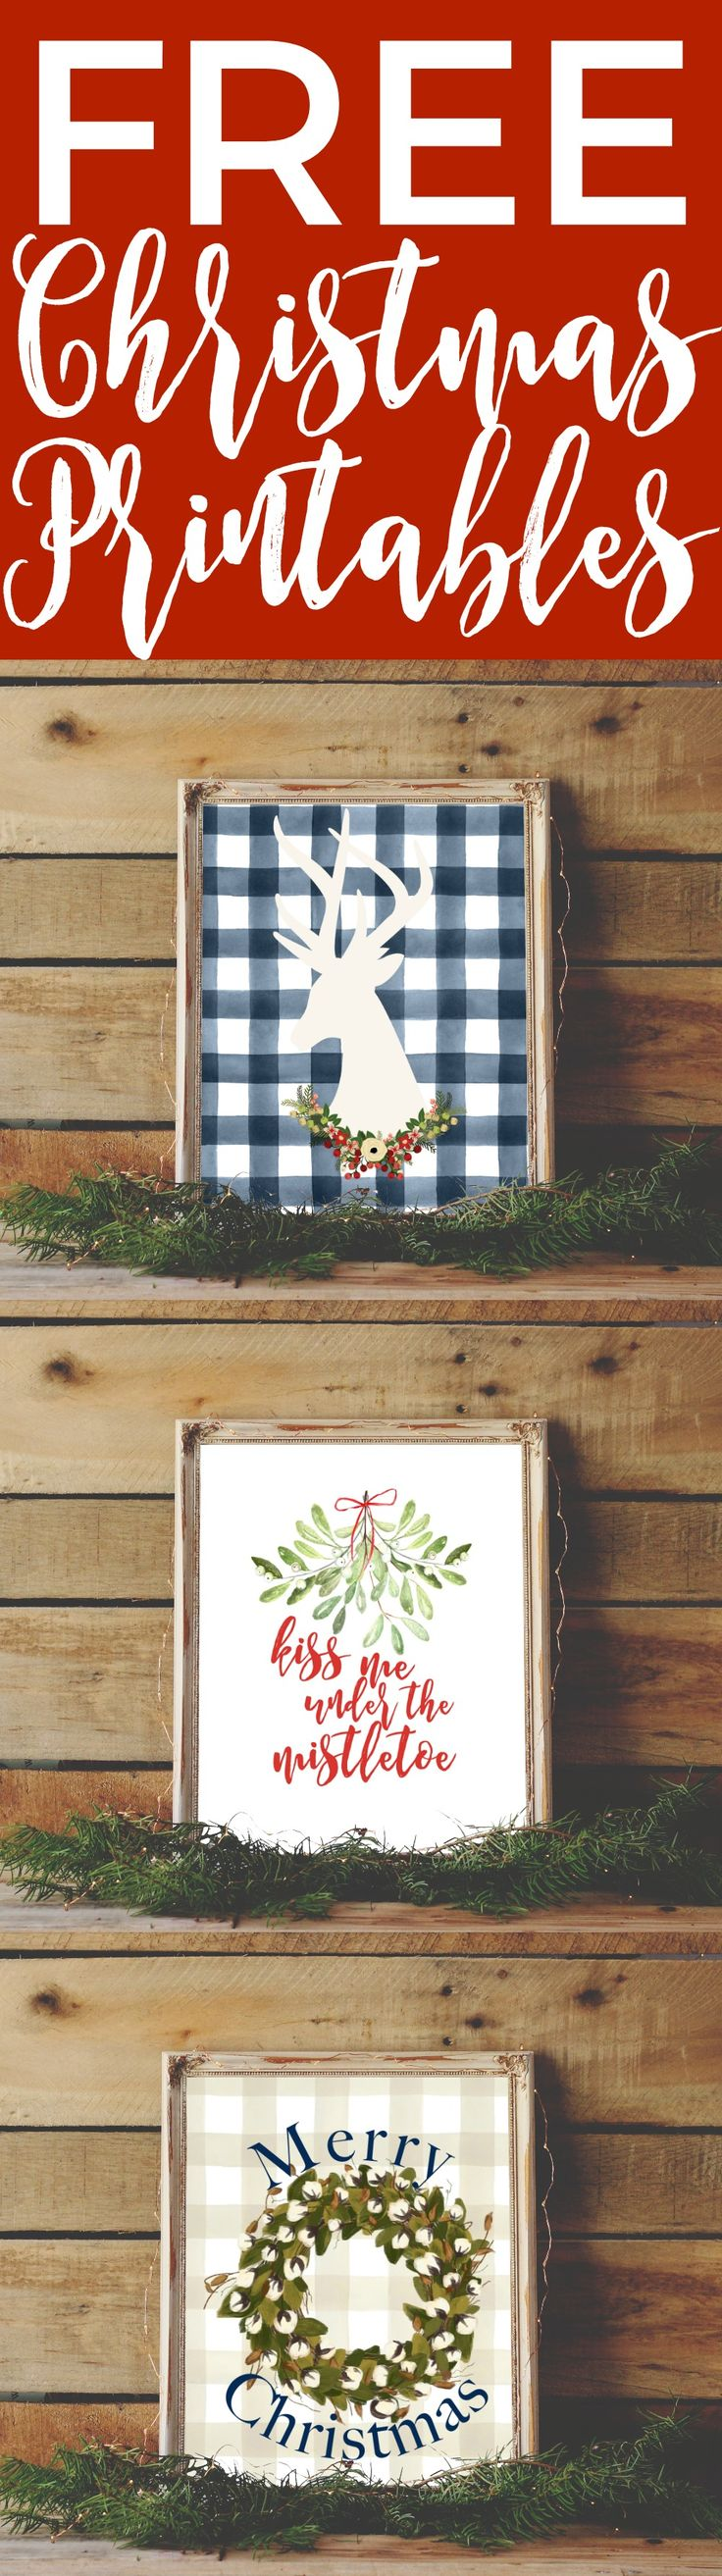 Grab 10 free Christmas printables to quickly decorate your house. Just use one or print off a bunch for a cute gallery wall!